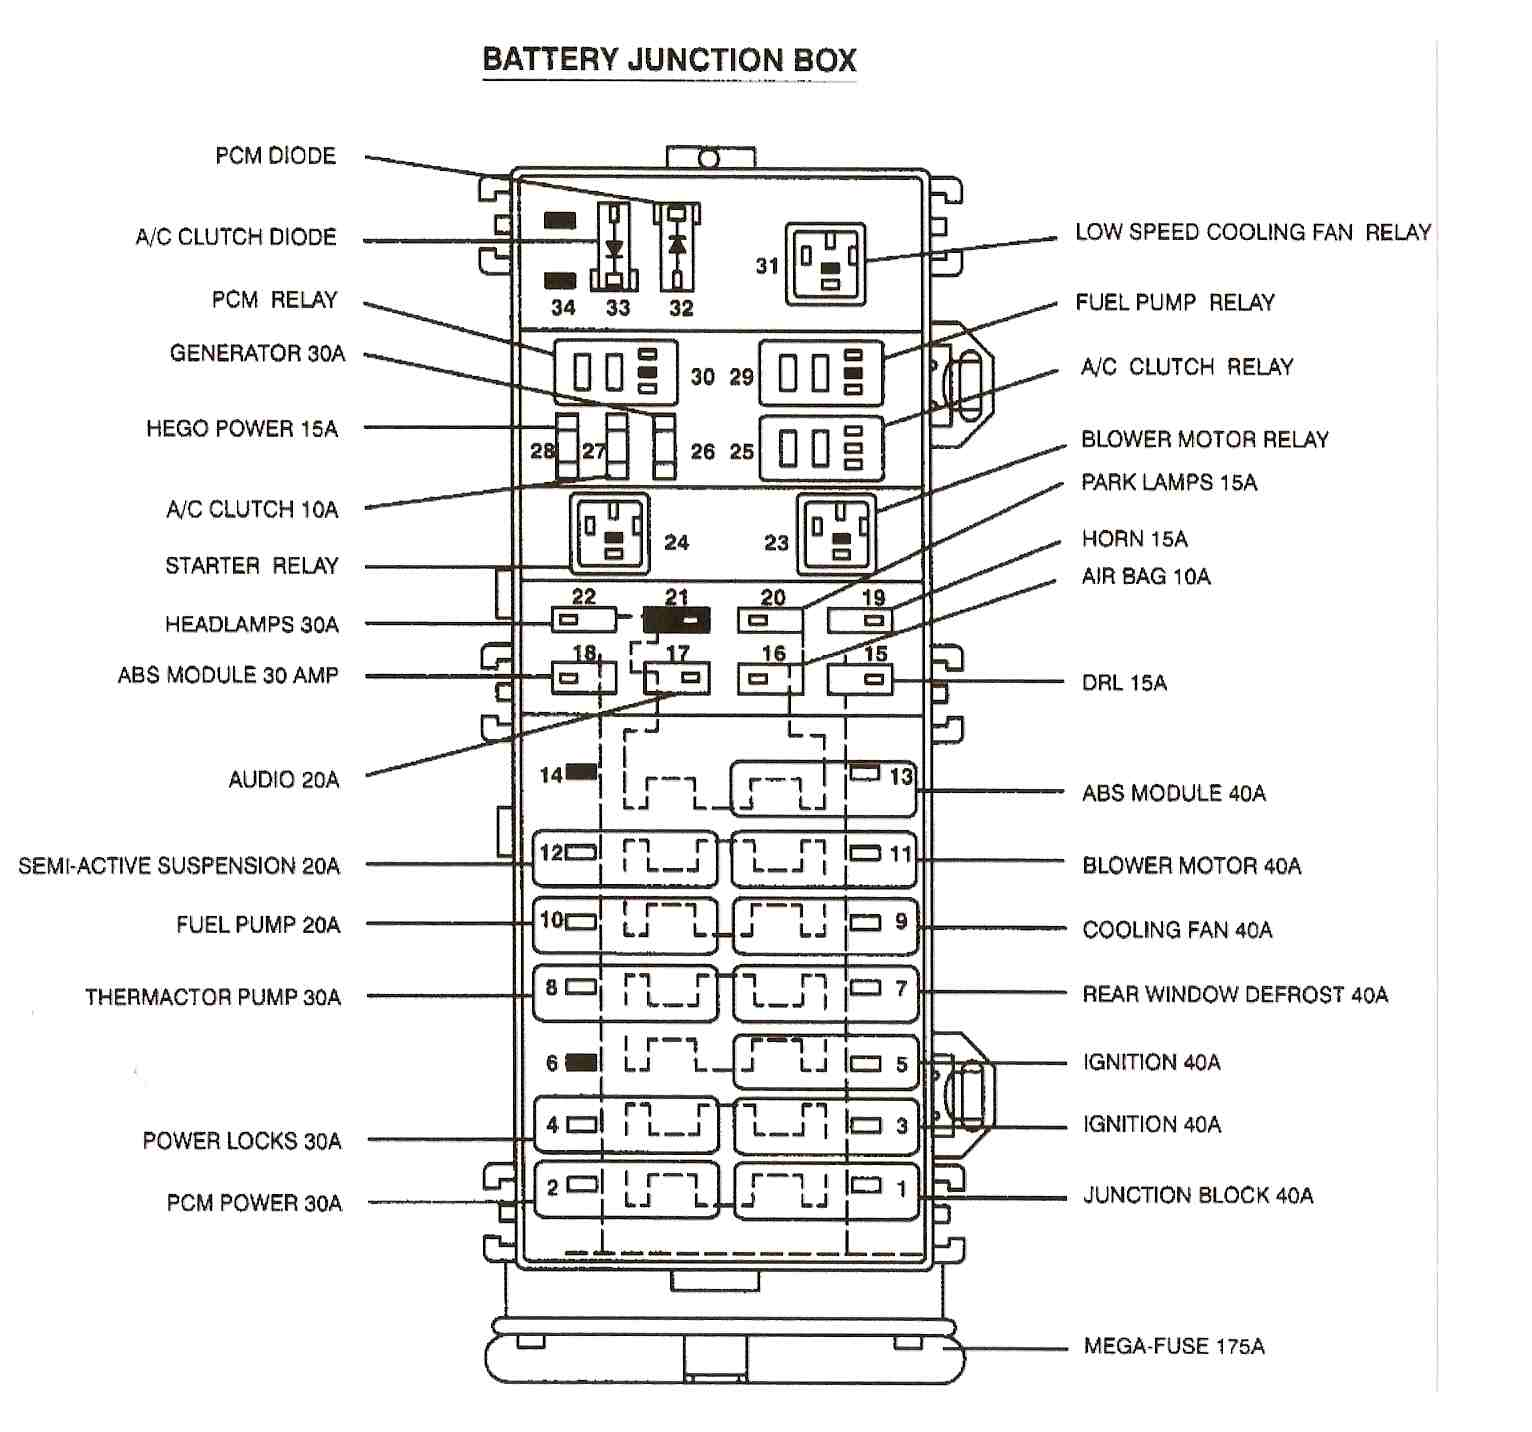 1996 ford taurus fuse box chart - wiring diagram system rock-term-a -  rock-term-a.ediliadesign.it  ediliadesign.it